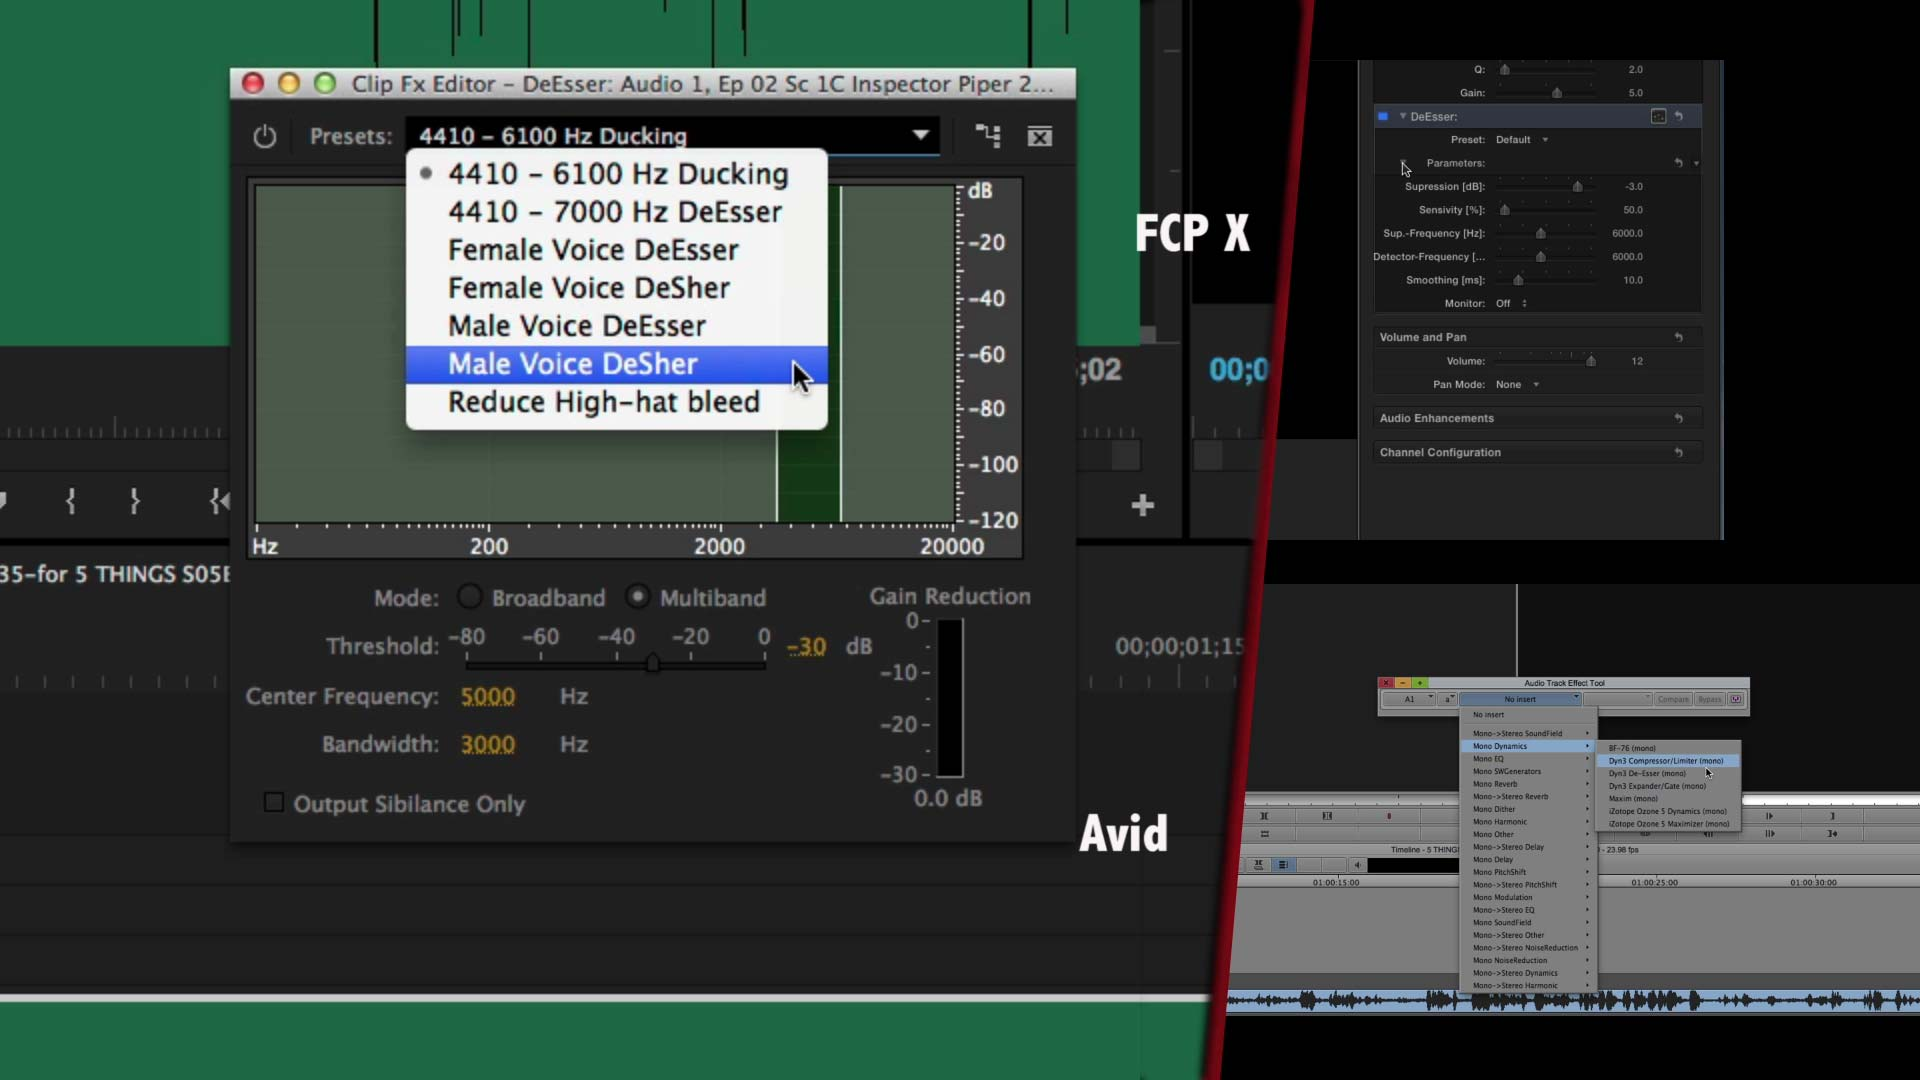 5 THINGS: on Audio Restoration and Fixes for Video Editors